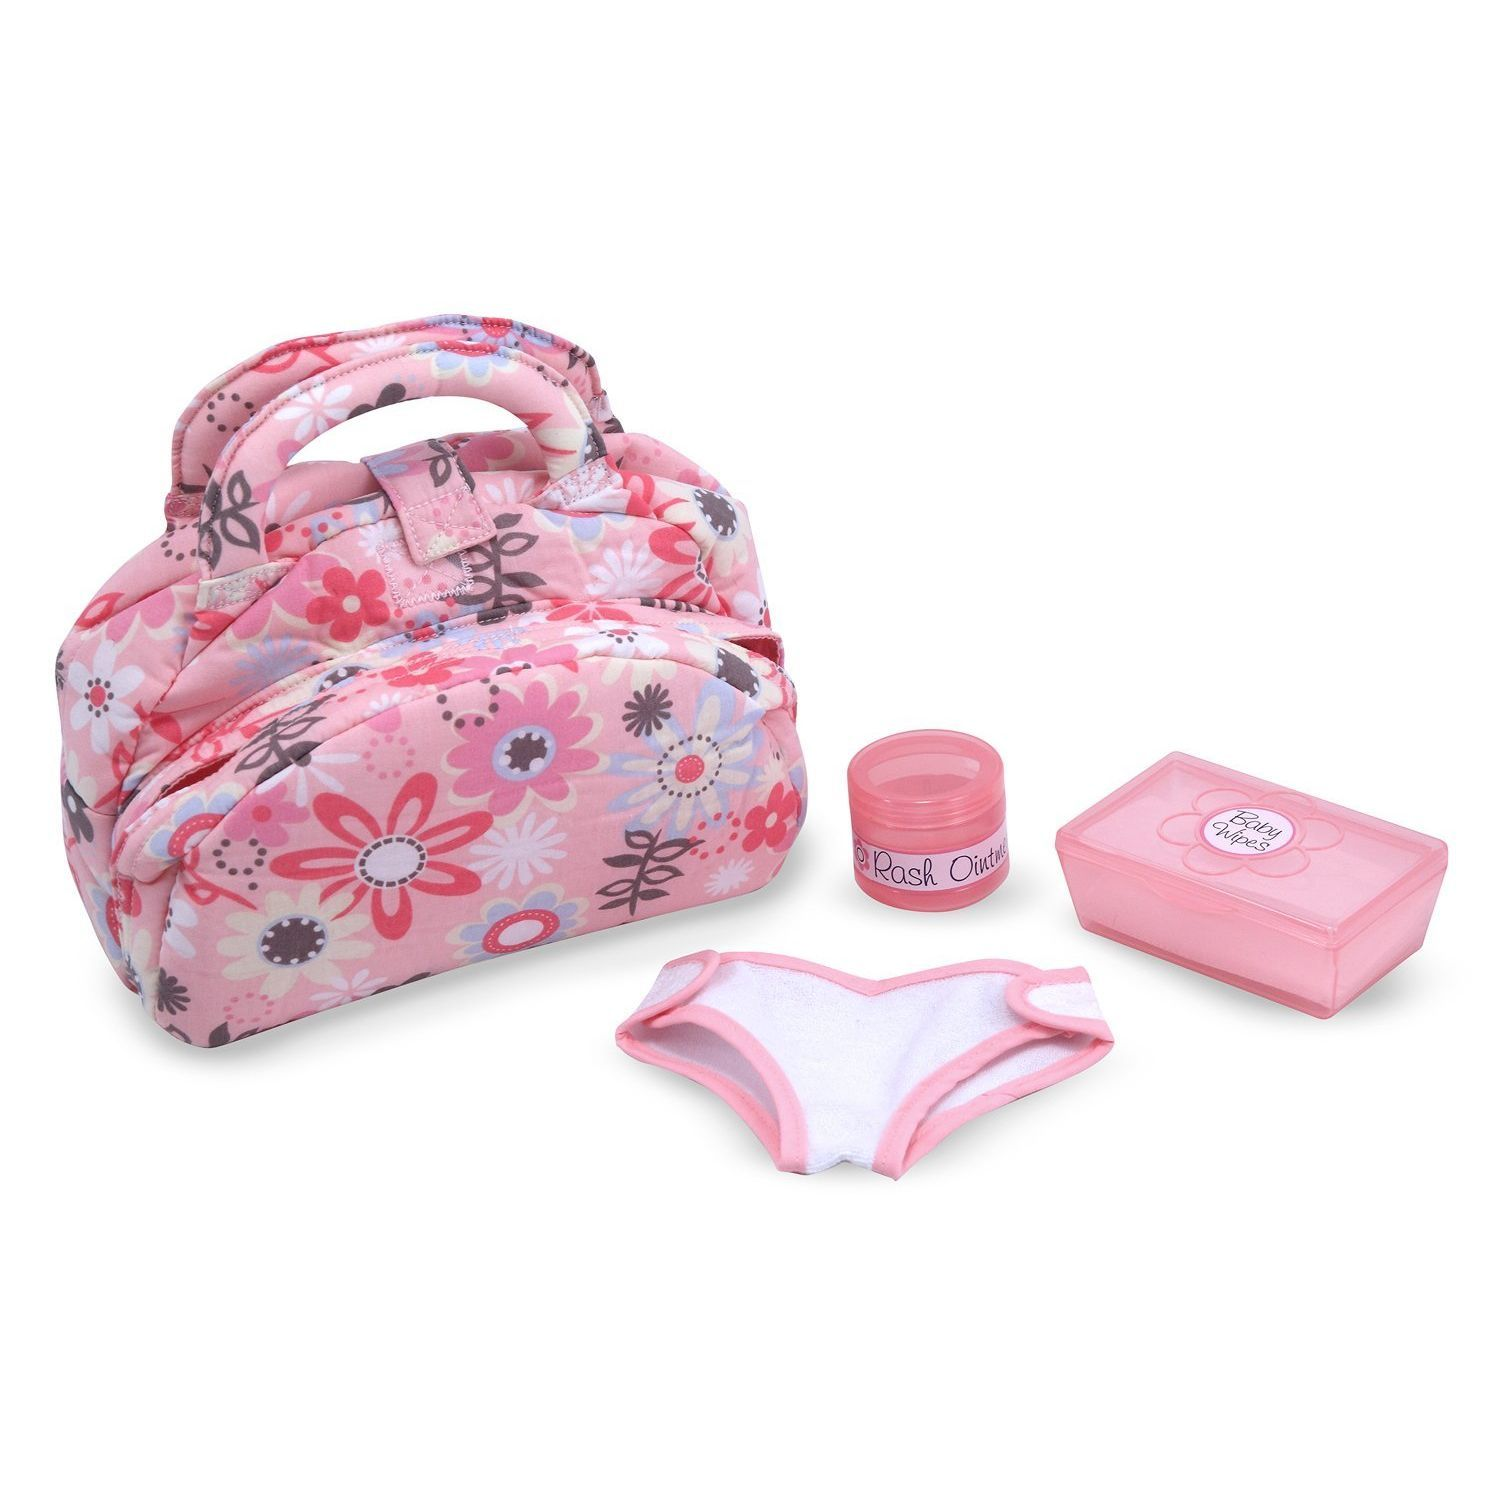 Melissa & Doug Mine to Love Doll Diaper Changing Set with Bag, Wipes, Accessories, 7pc